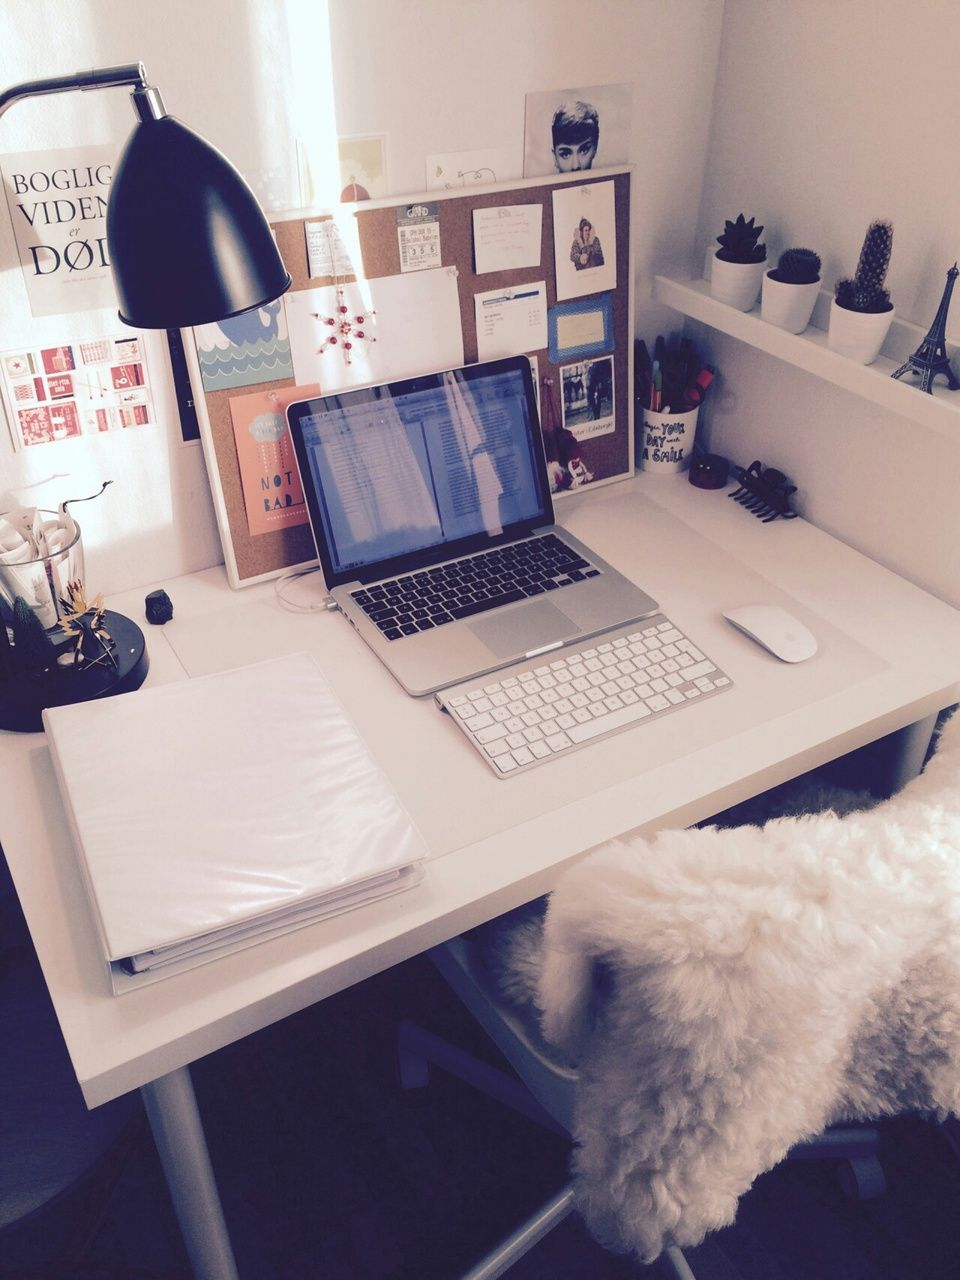 Clean Desk With Nice Photos